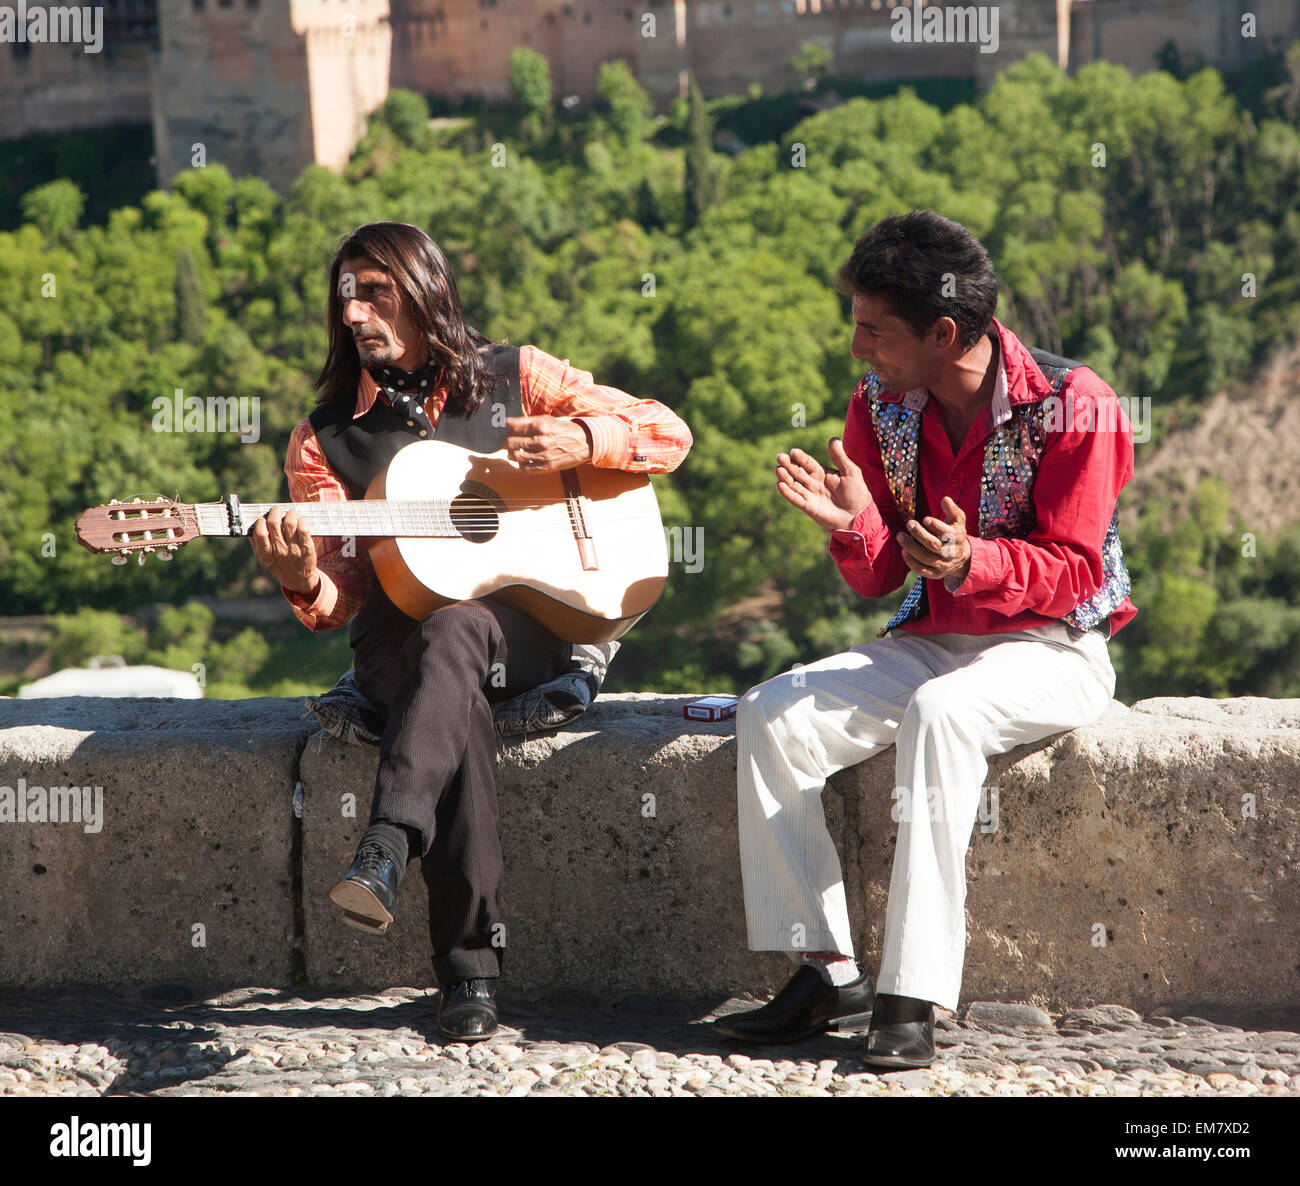 Flamenco musicians play with a backdrop of the Alhambra, Granada, Spain - Stock Image